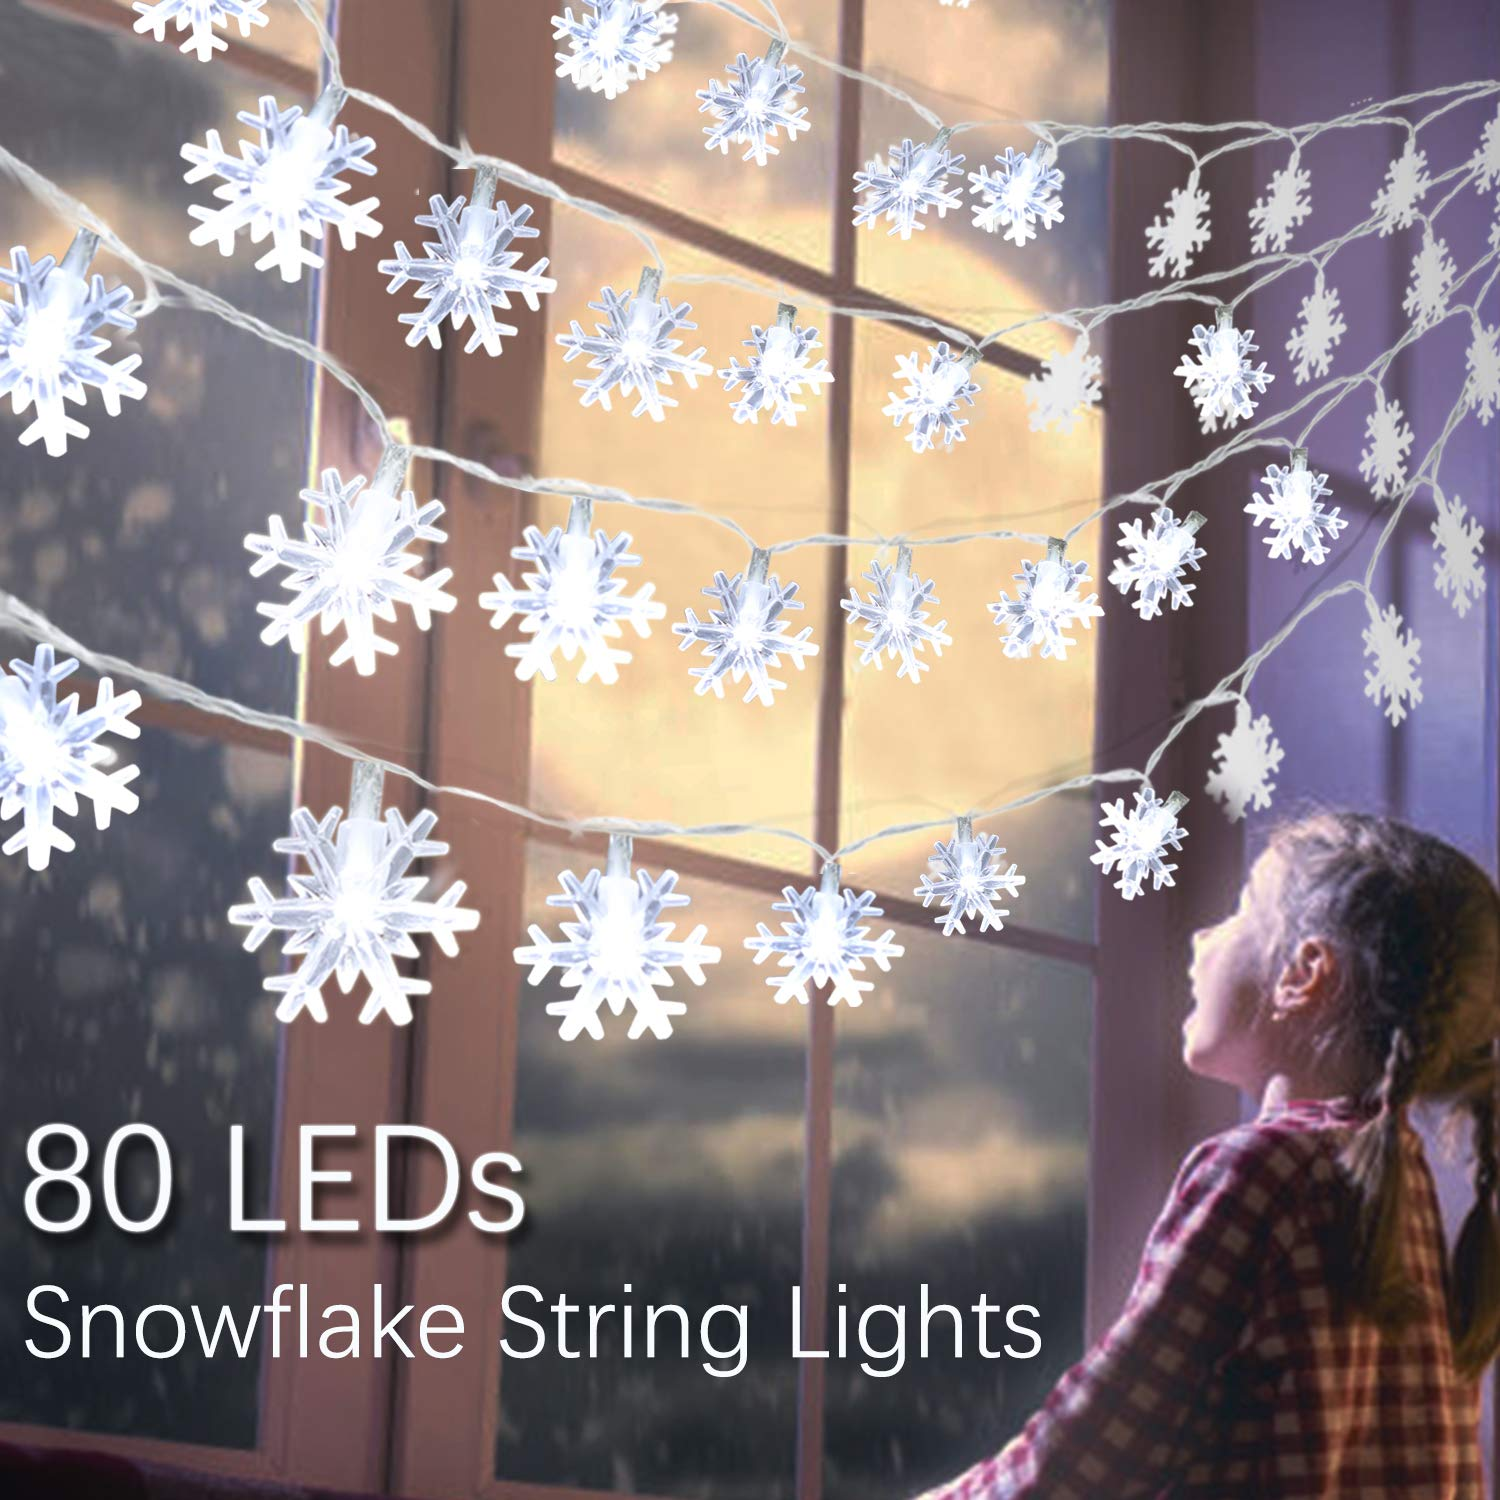 B bangcool Snowflake String Lights Christmas 32.8ft Battery Powered Waterproof Decorations Outdoor Decor for Amazon.com: